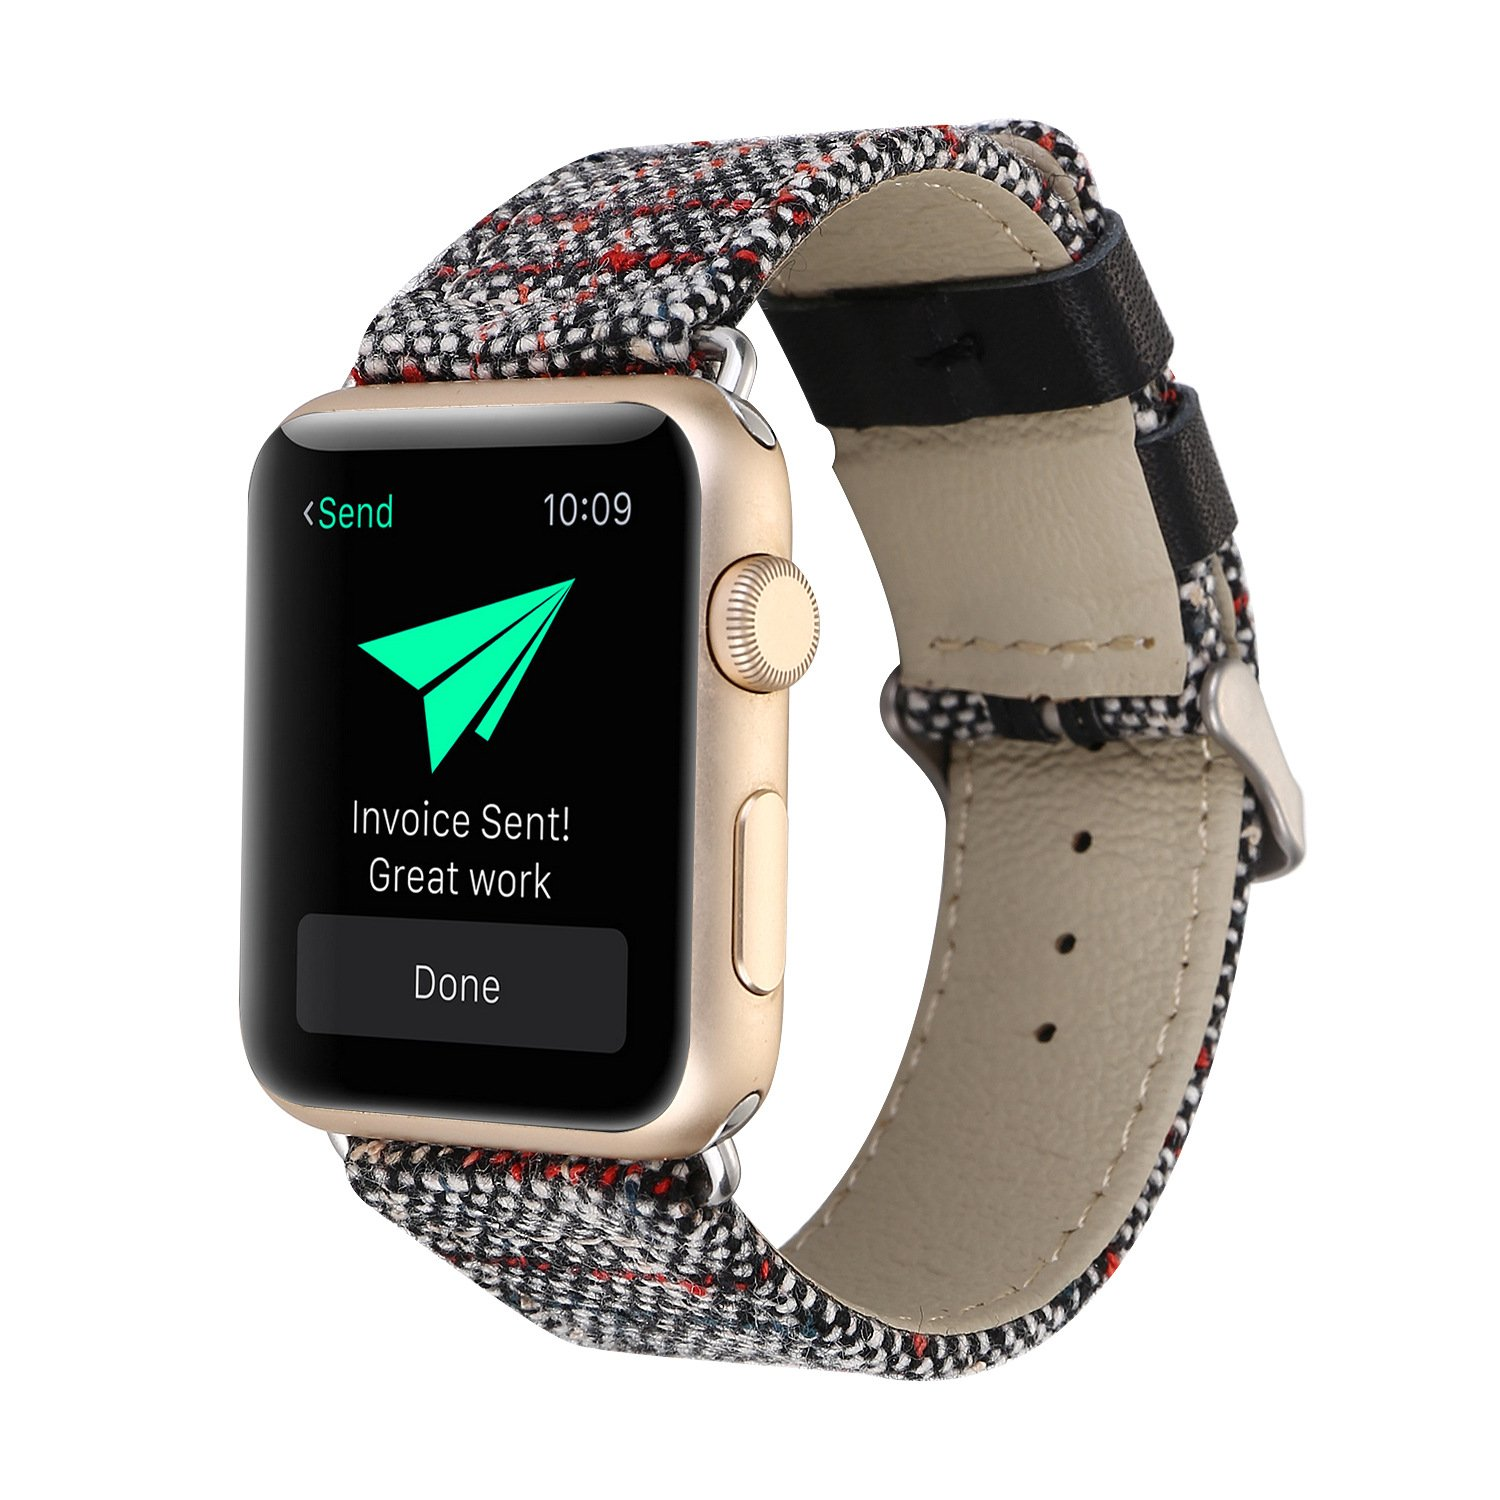 Apple watch cotton linen watch strap genuine leather strap for iwatch 1,2,3 white2 42mm